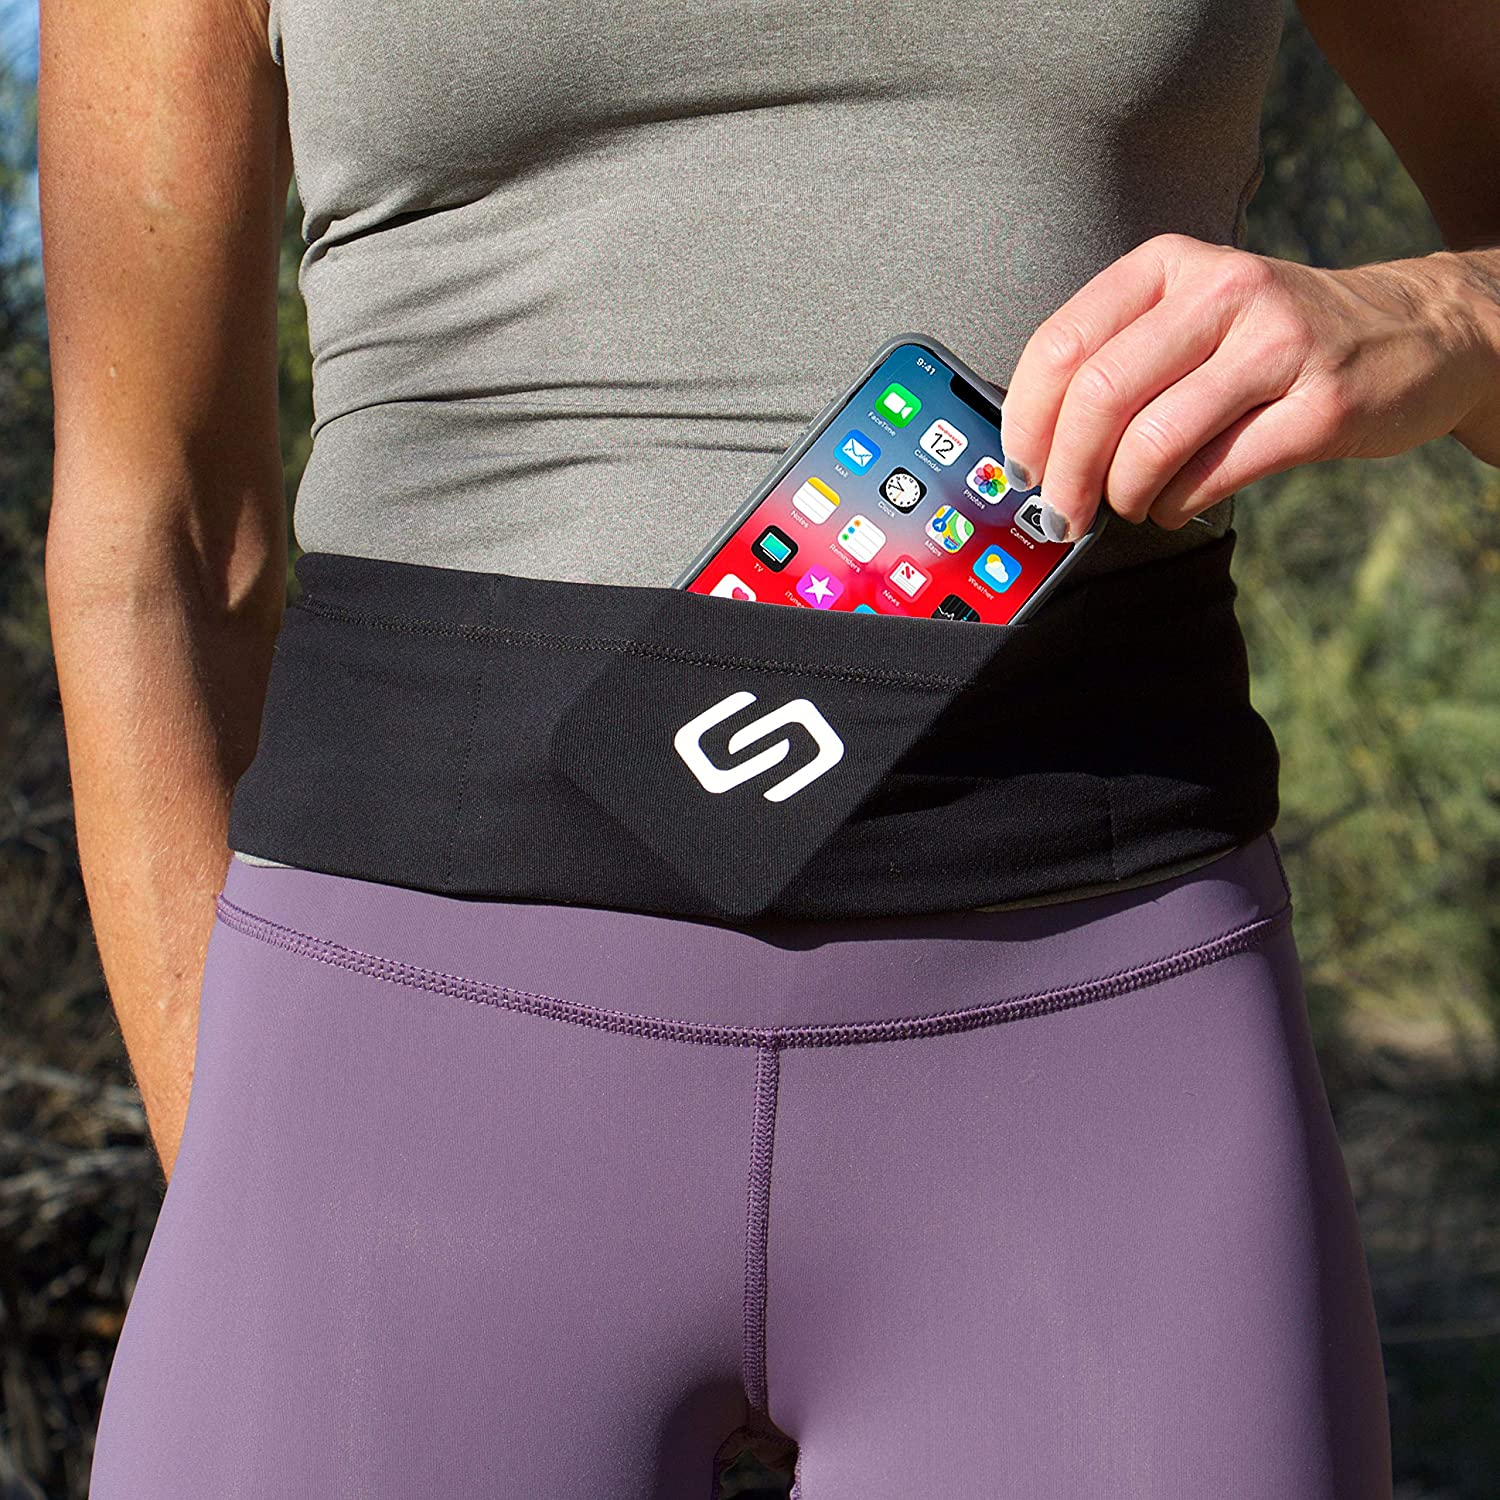 Sporteer VersaSlim Running Belt, Travel Money and Passport Belt, Workout Waist Pack for Large Phones and Personal Items